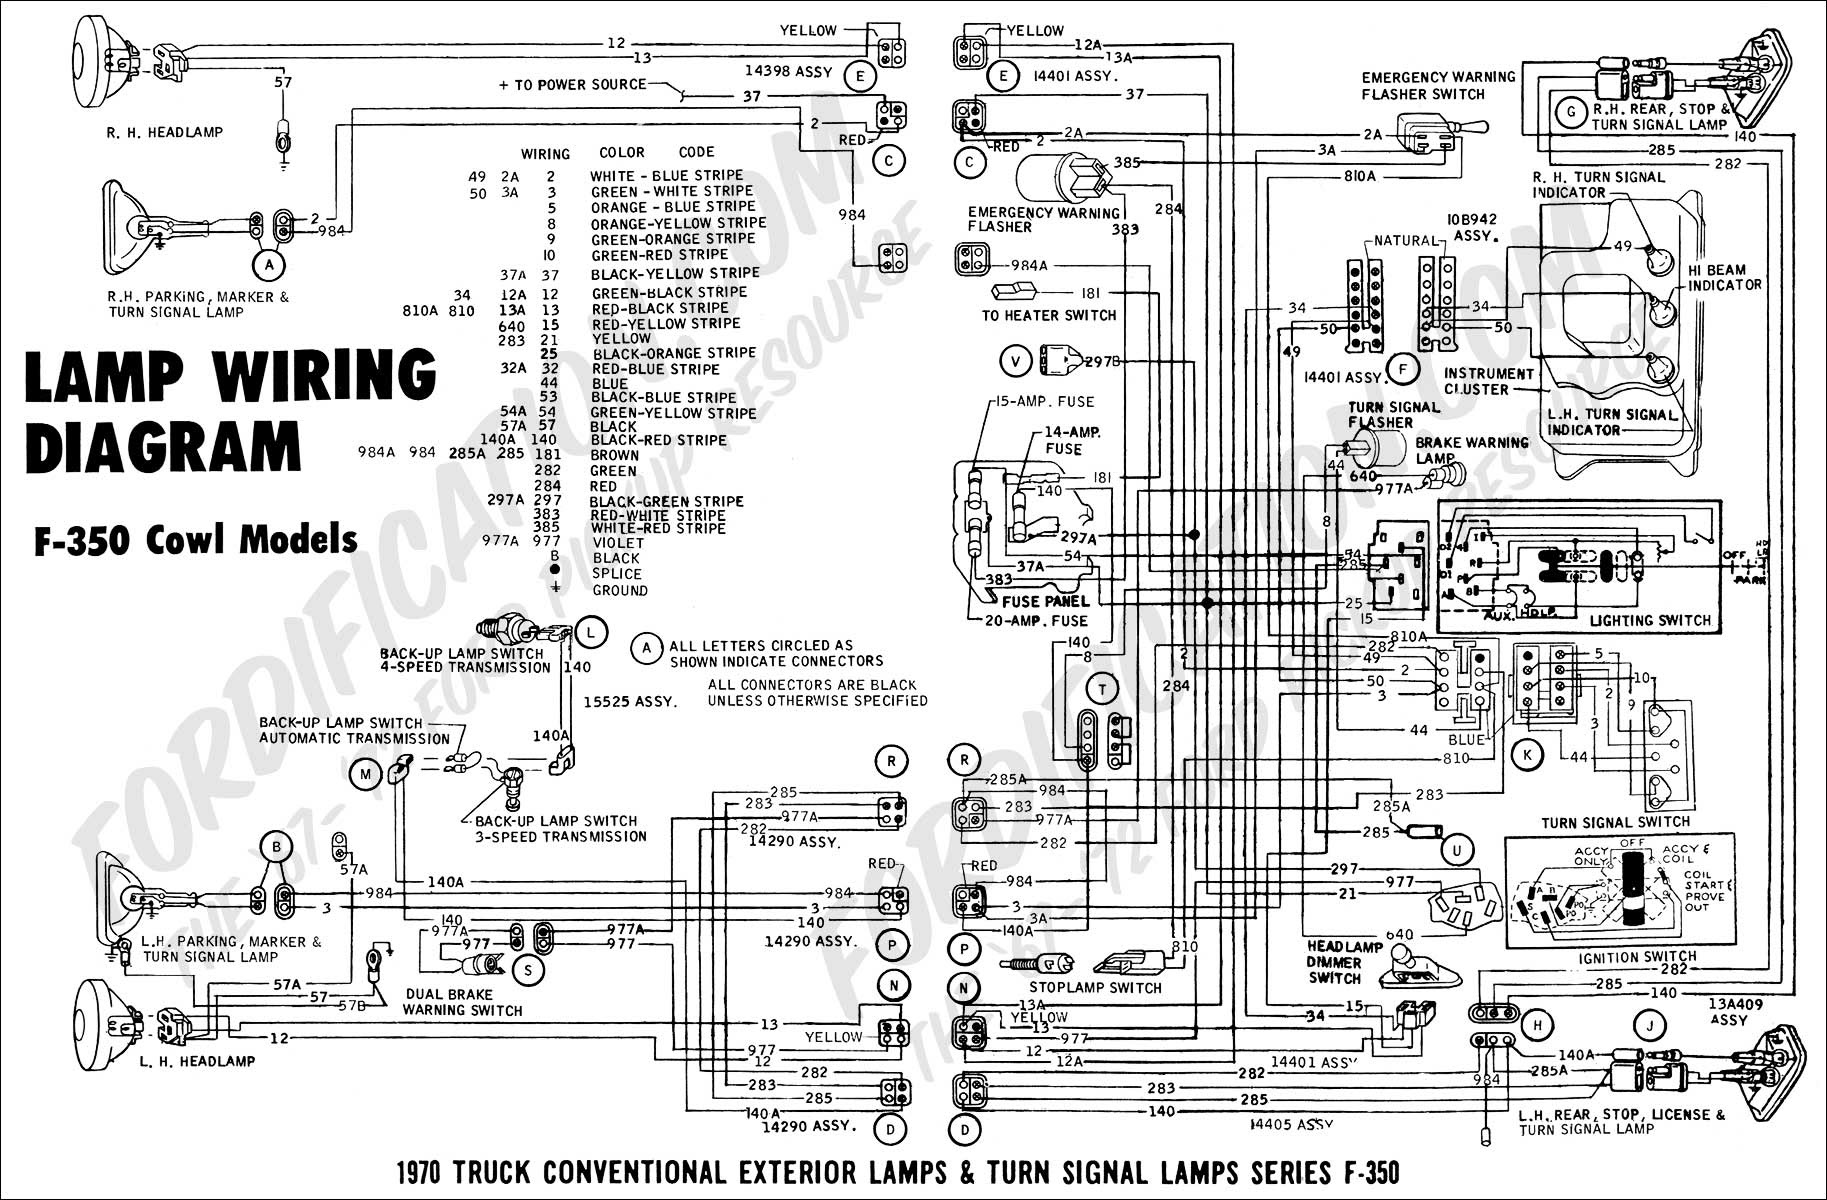 1999 Ford F250 Tail Light Wiring Diagram Wiring Diagram Theory Theory Zaafran It